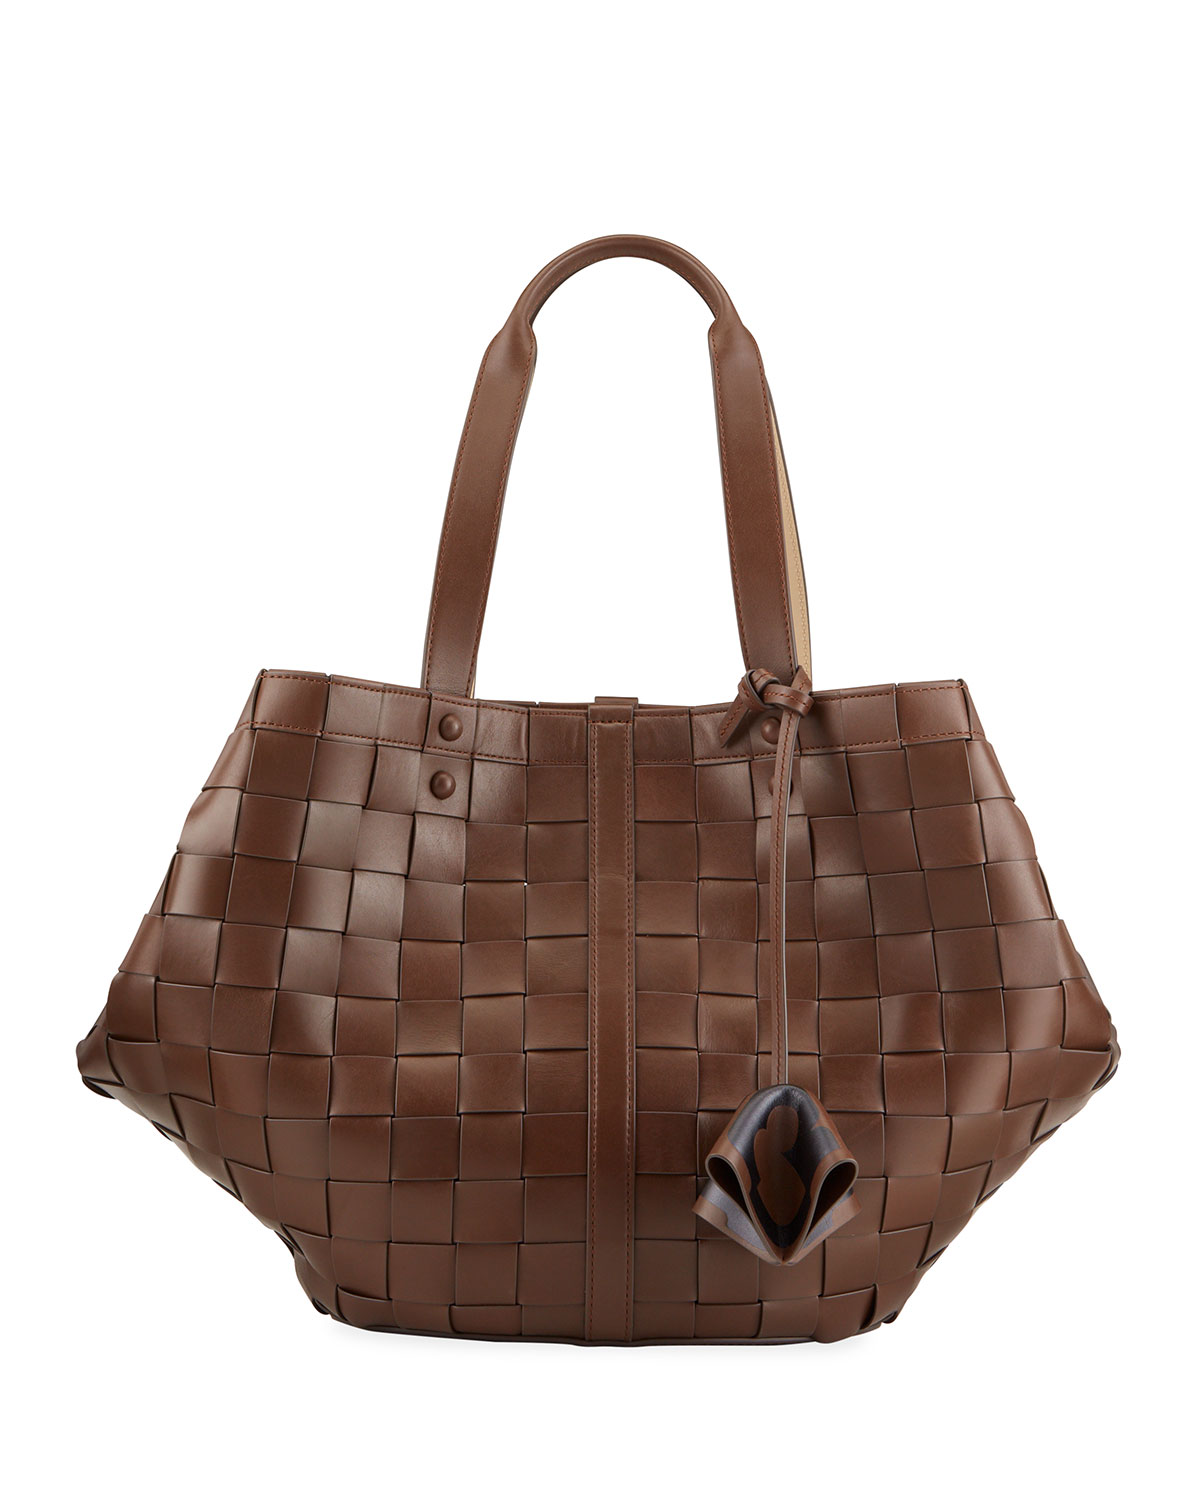 Tory Burch SETE WOVEN LEATHER TOTE BAG, COLD BREW